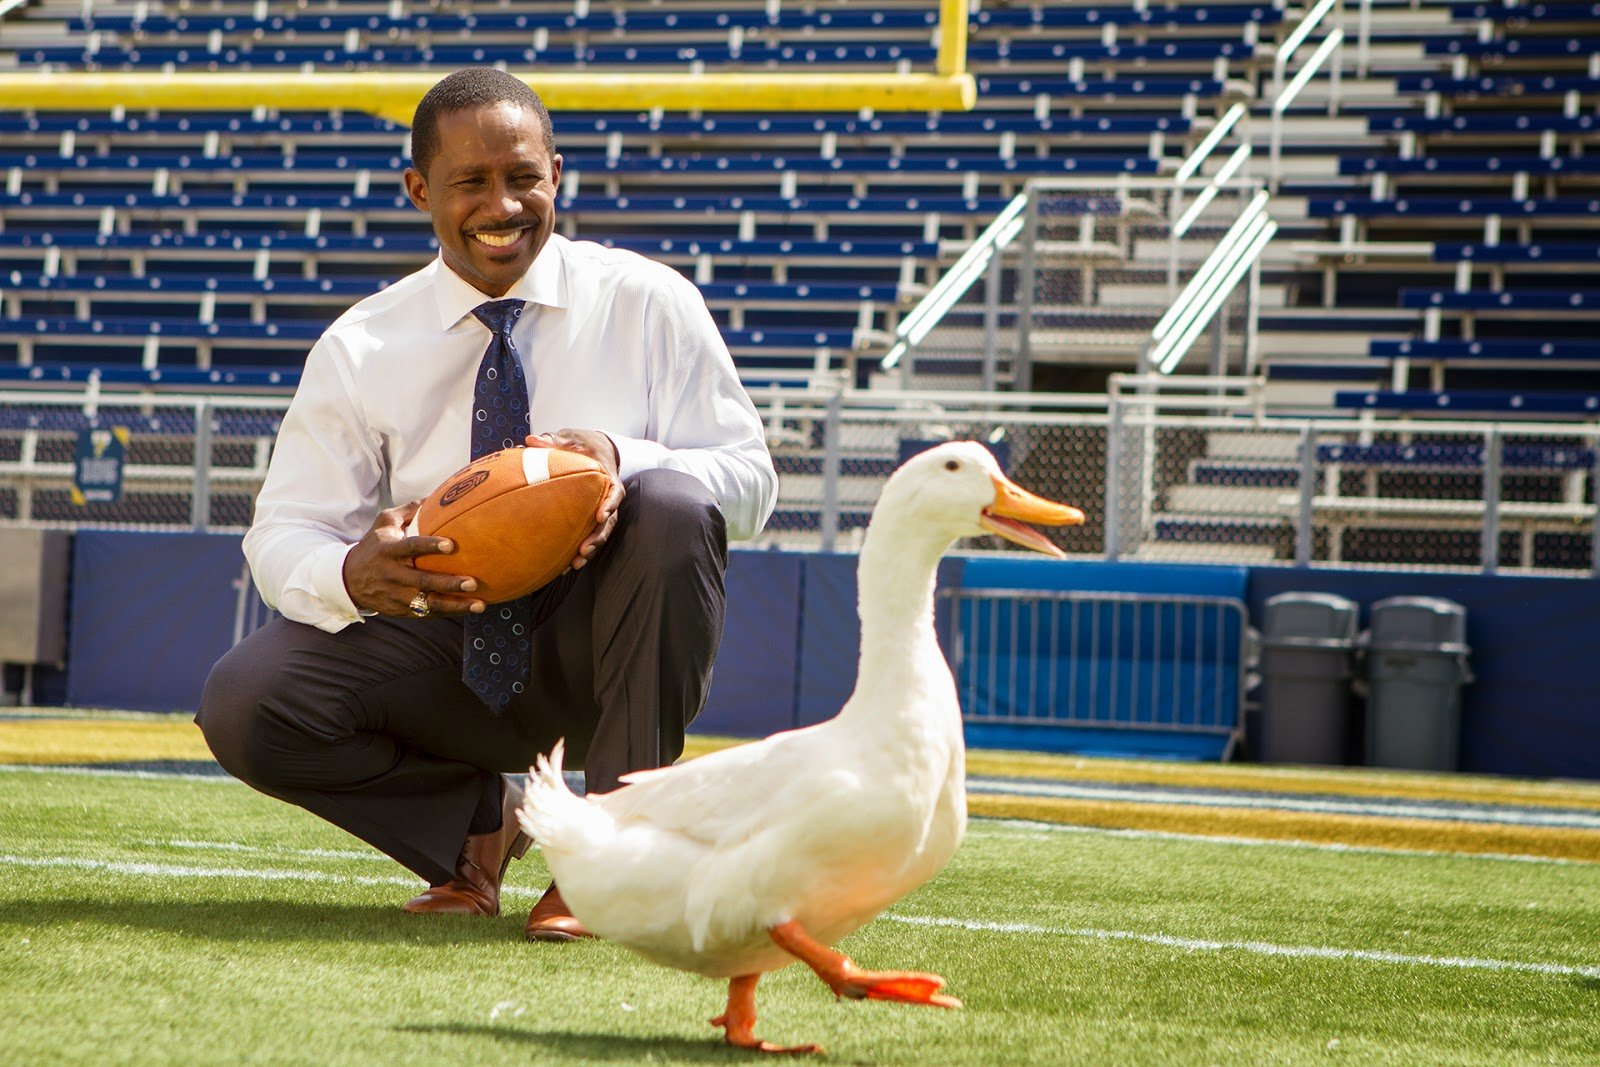 Desmond Howard Aflac Duck